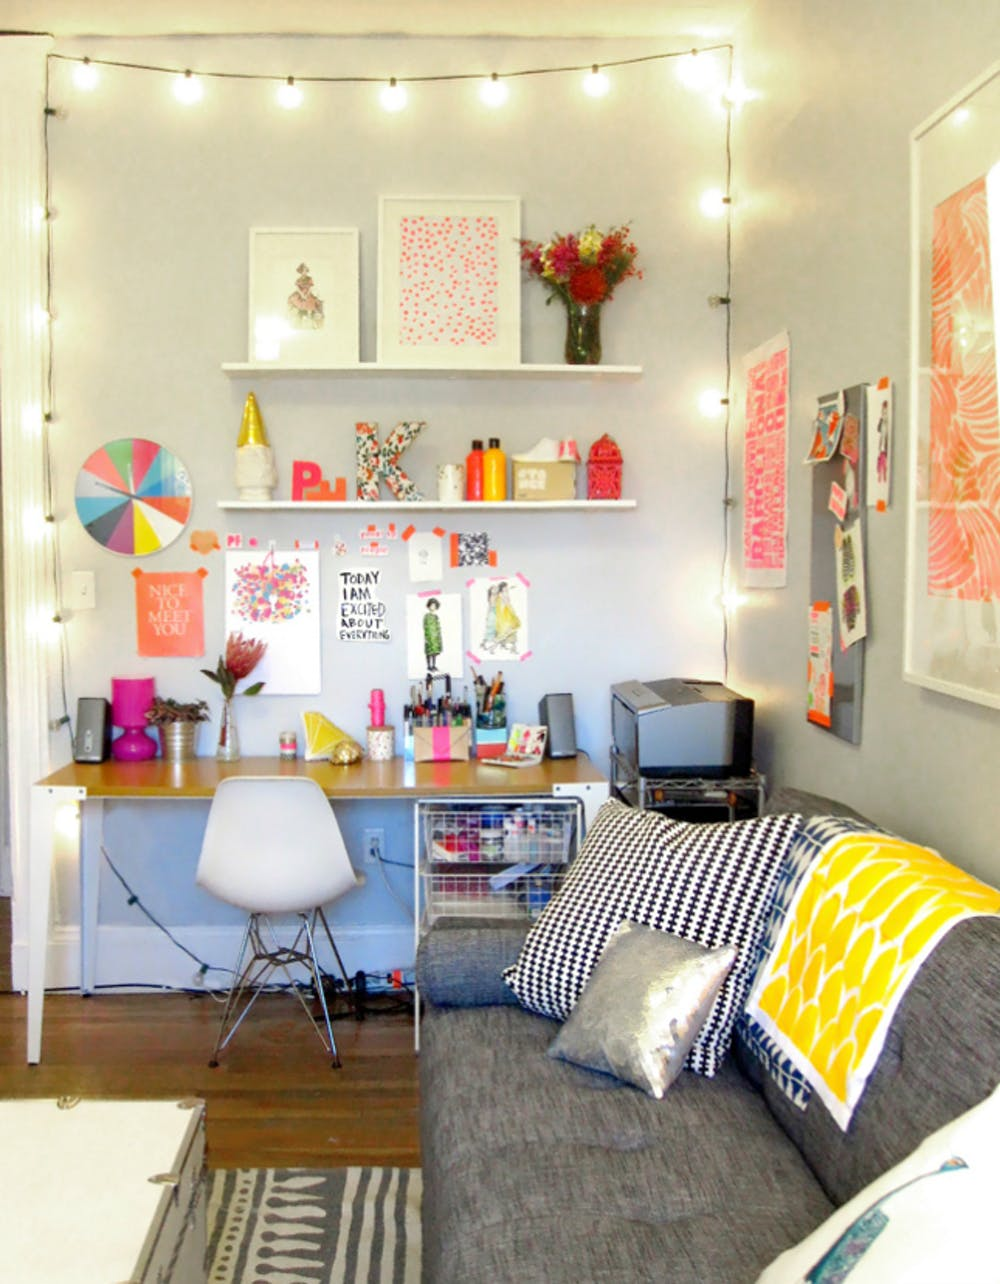 Hygge inspired workspace string lights wood top working desk Scandi style working chair in white gray sofa wood floors